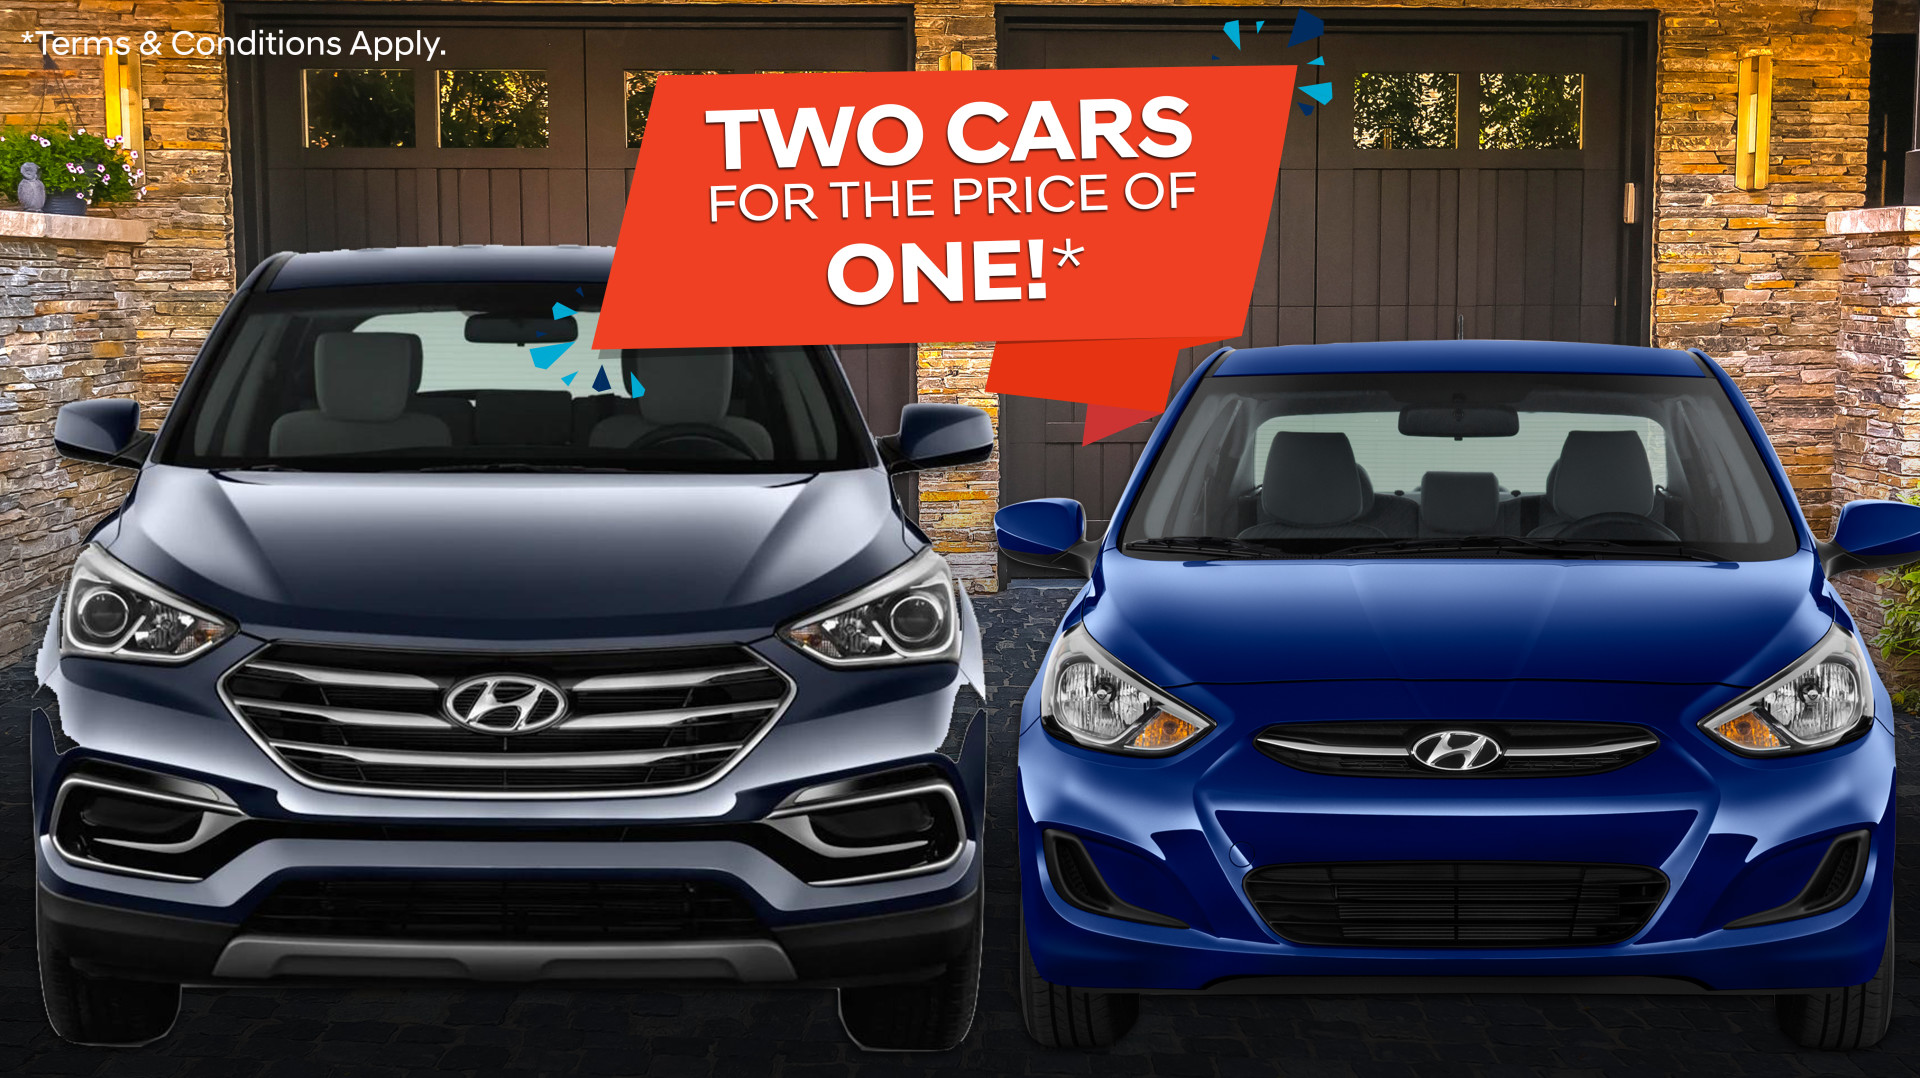 Get Two Cars For The Price Of One